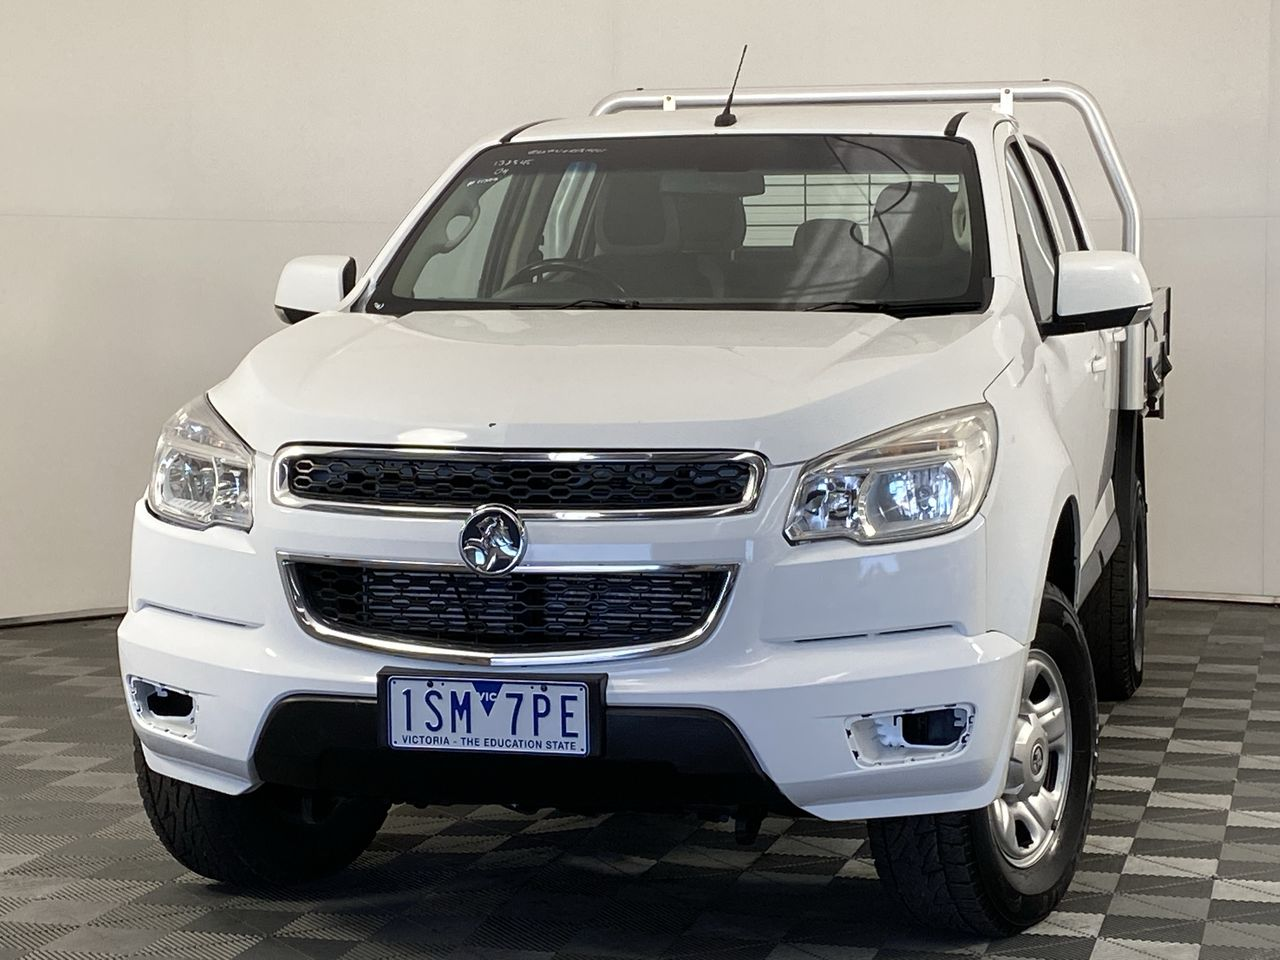 2016 Holden Colorado 4X4 LX RG Turbo Diesel Automatic Crew Cab Chassis